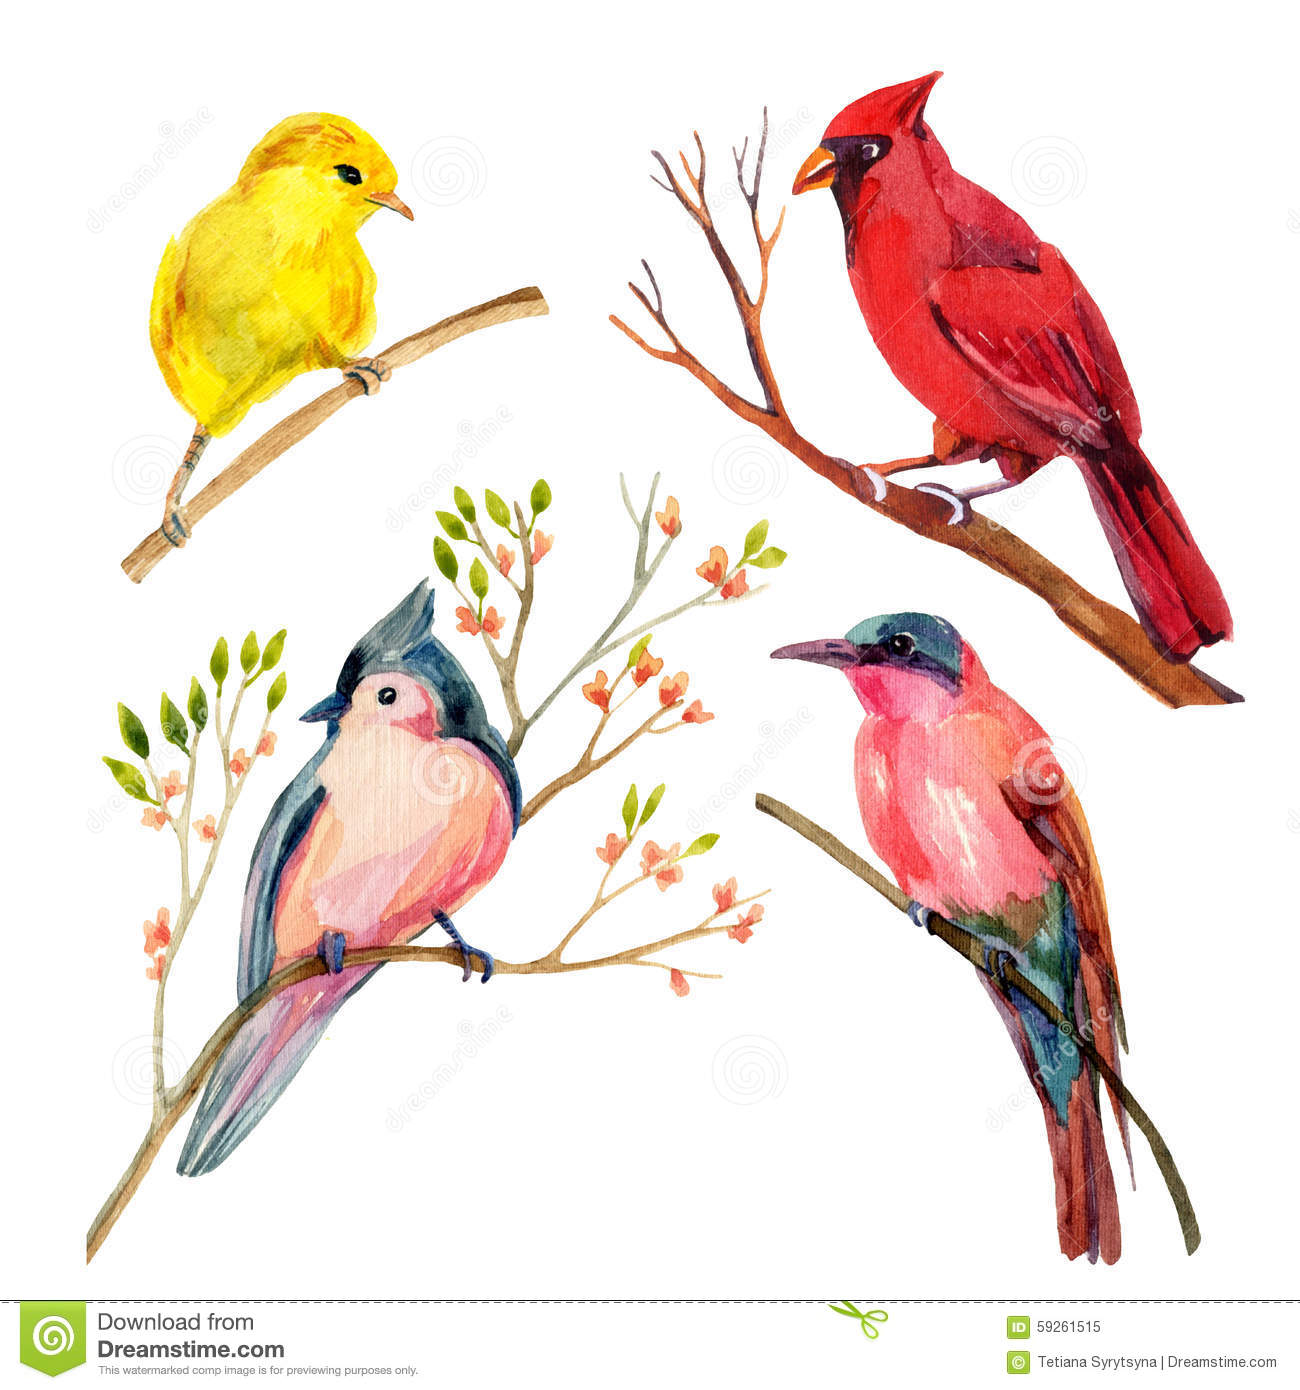 Yellow Warbler clipart #11, Download drawings